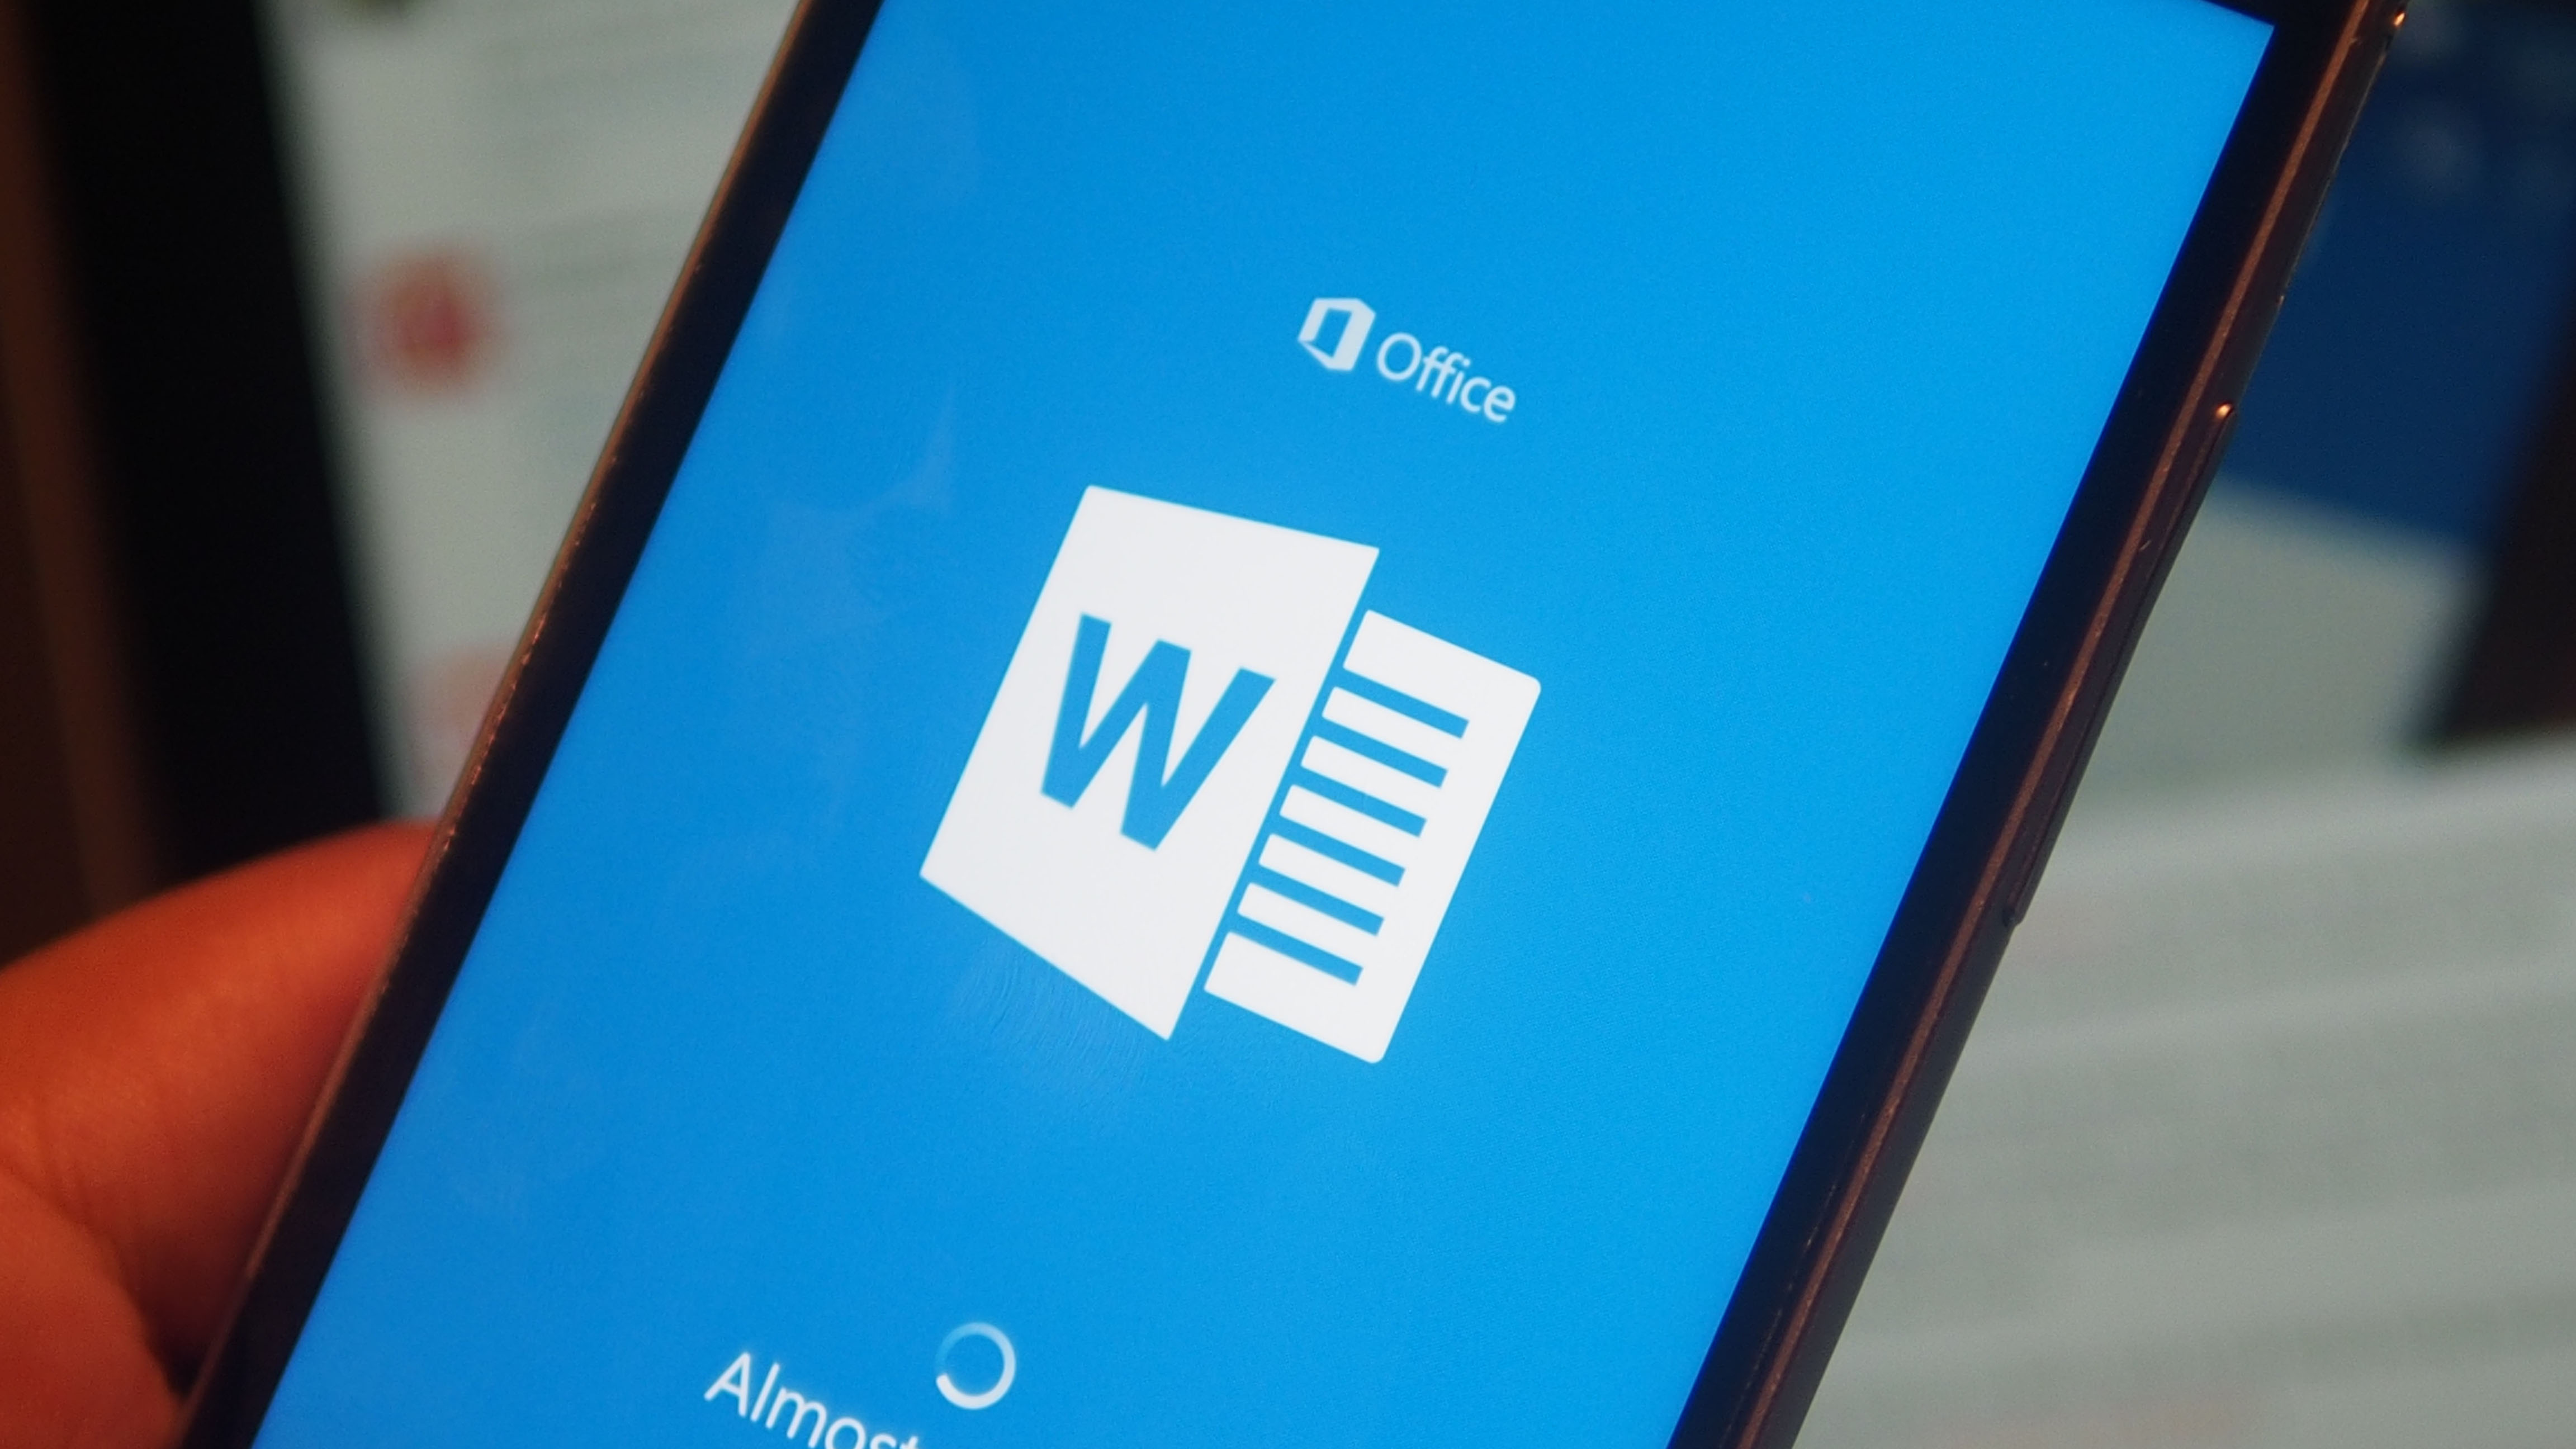 Camera Ms Office For Android Phone microsoft word powerpoint and excel hit android phones in beta